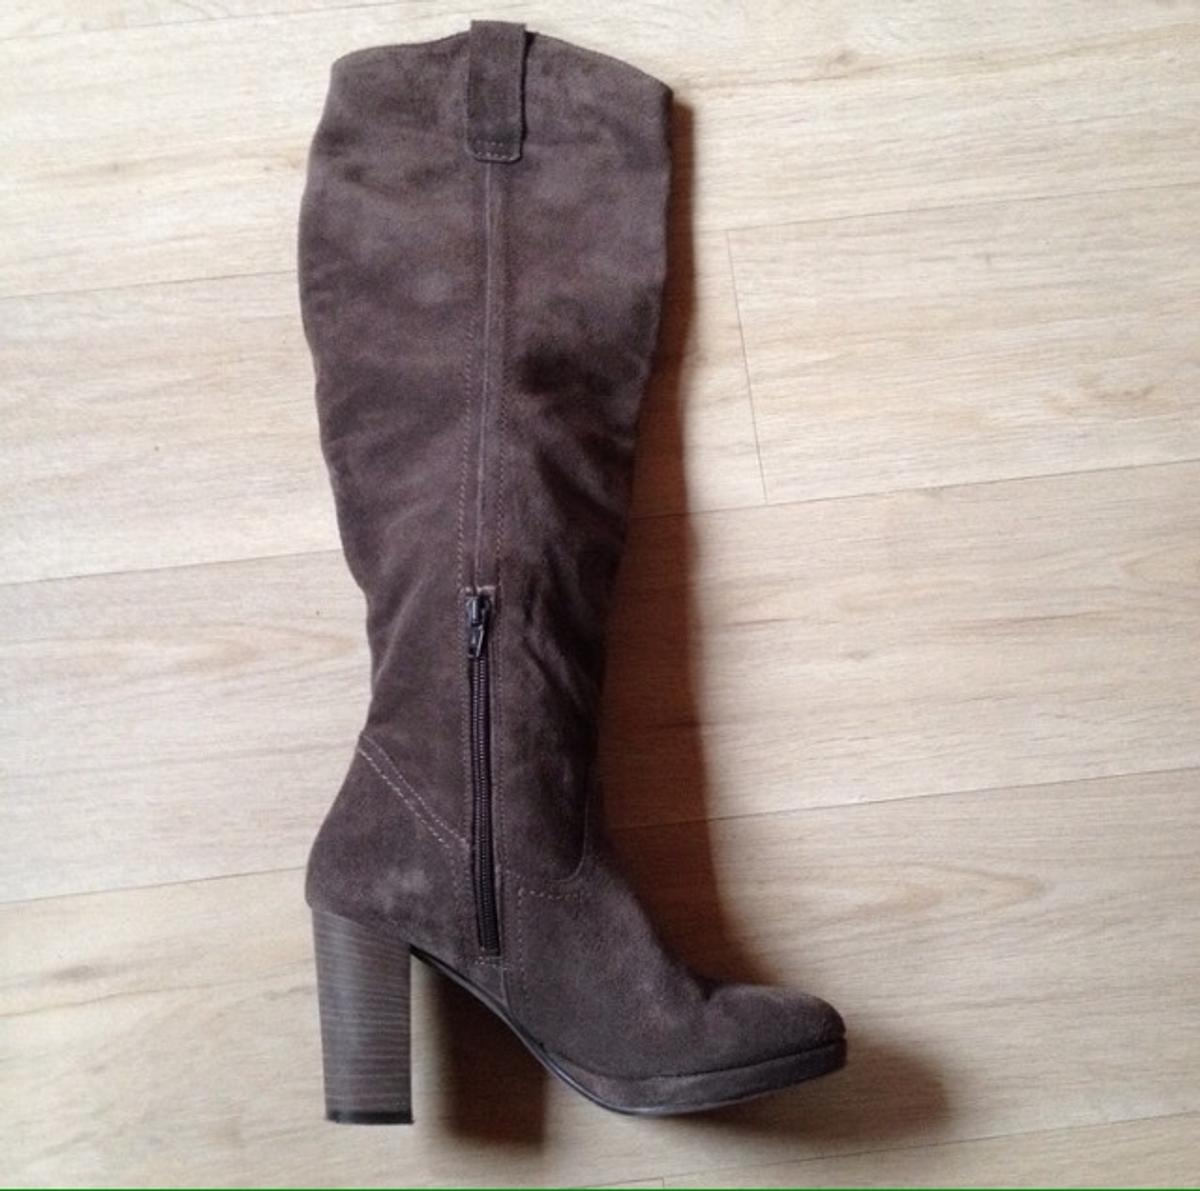 on sale 3cb84 18d9c Wildleder Stiefel braun in 83714 Miesbach for €30.00 for ...